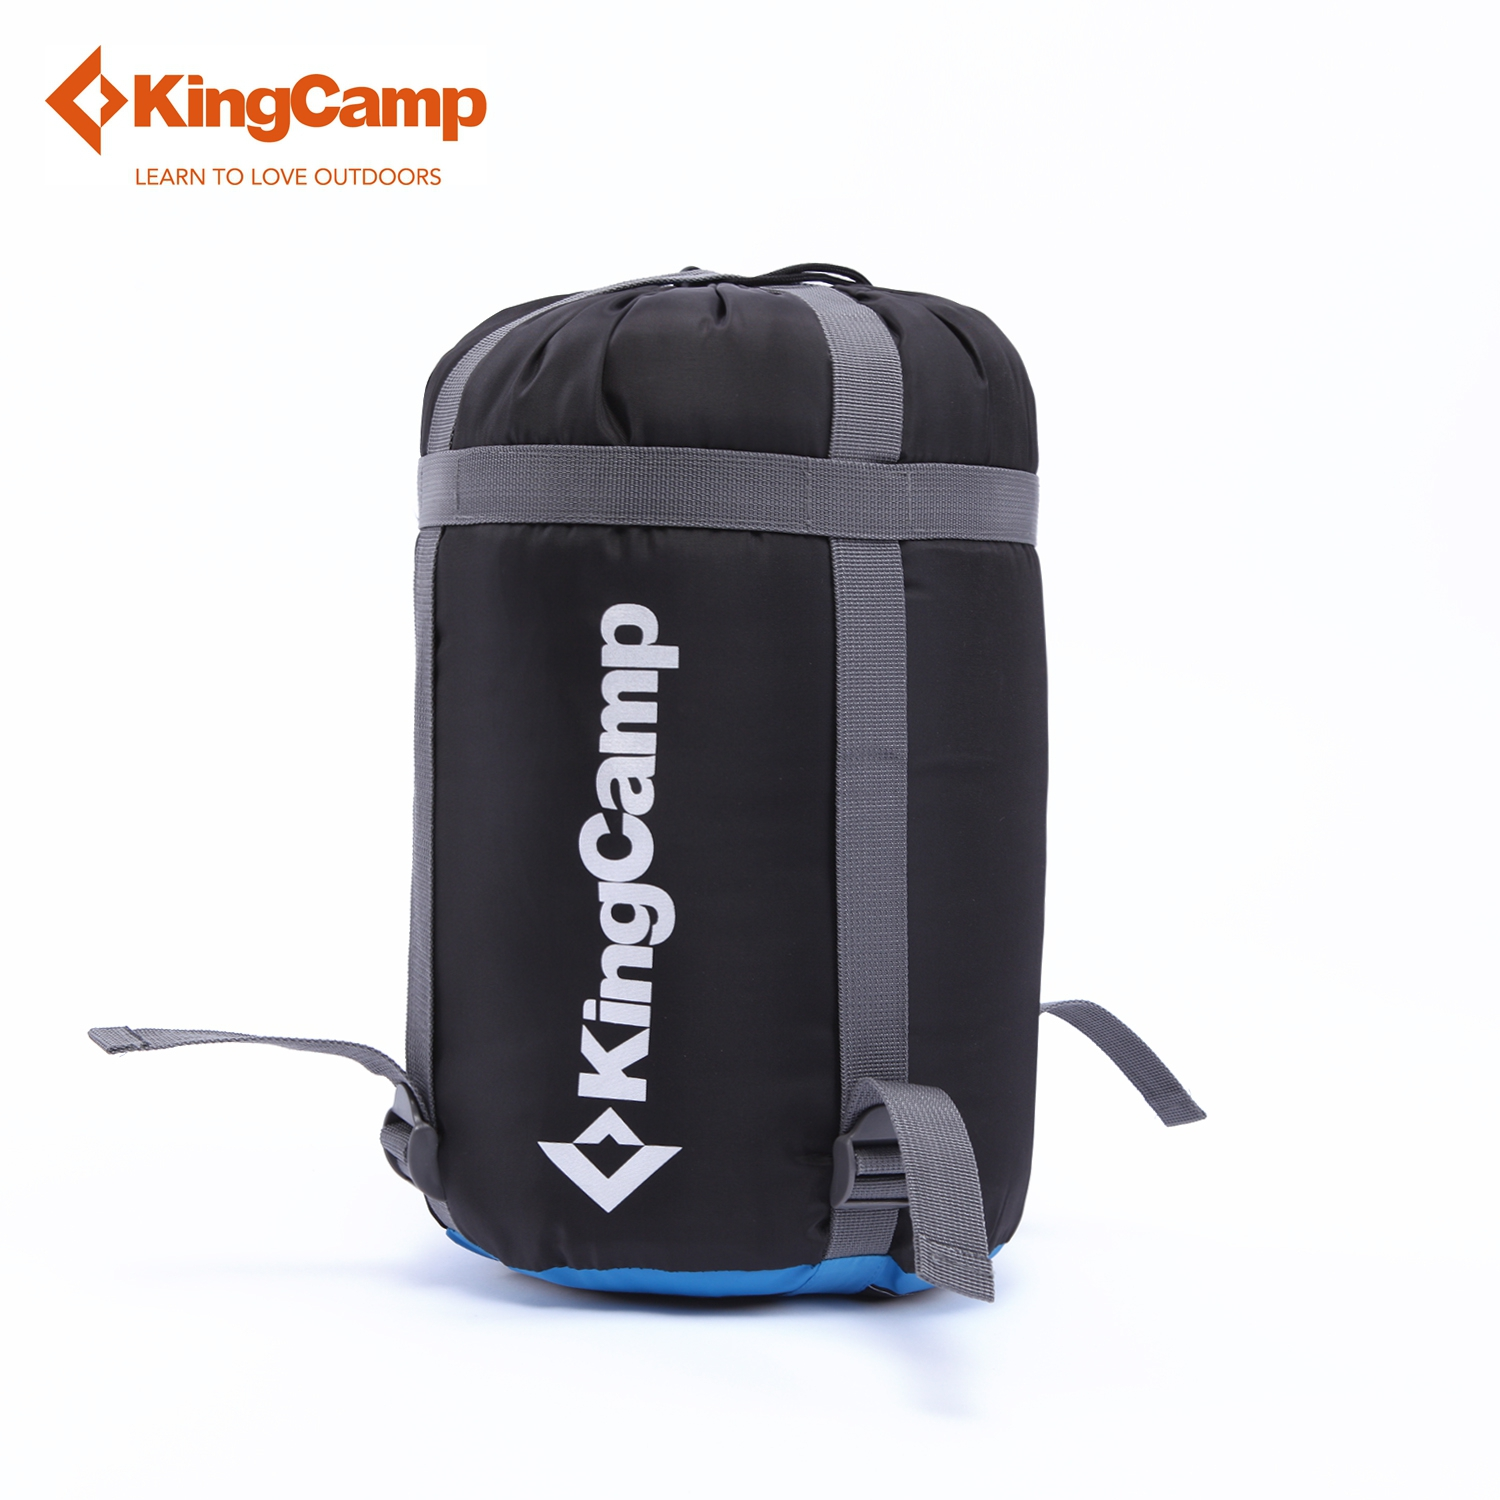 KingCamp Winter Sleeping Bag Lazy Treck 450L Mummy 4 Season For Camping Backpacking In Bags From Sports Entertainment On